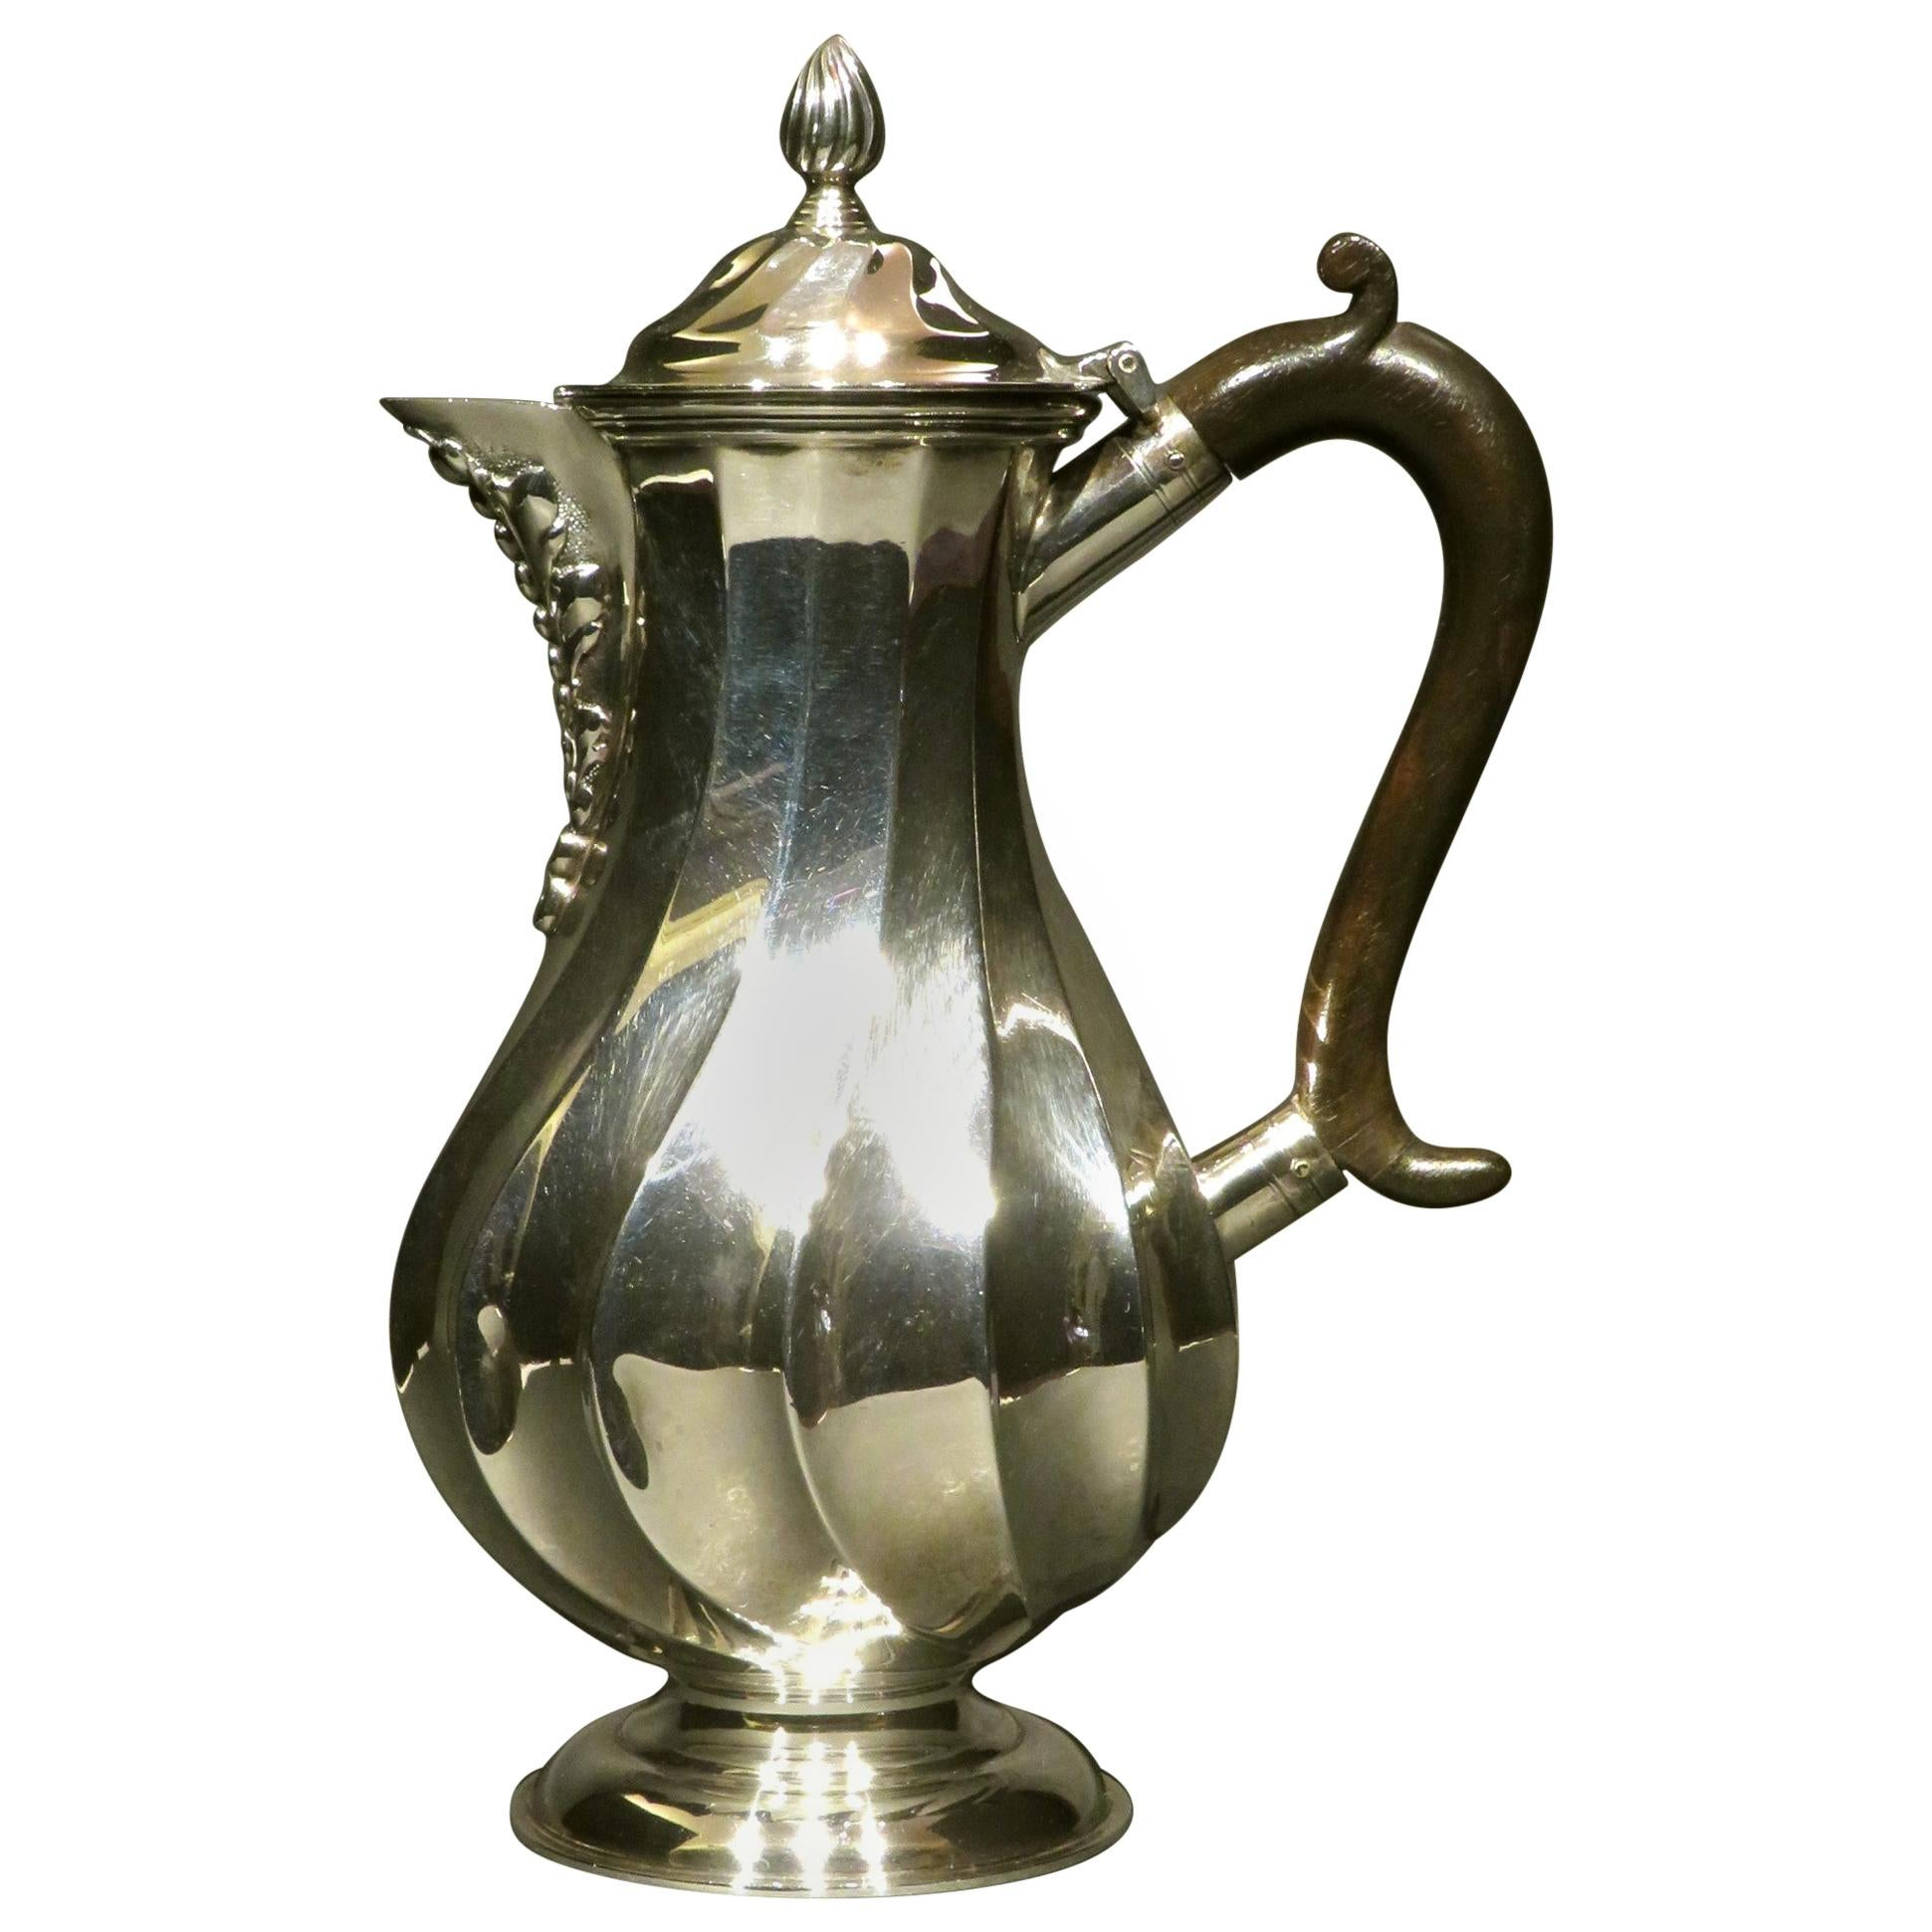 Arts & Crafts Period Sterling Silver Hot Water / Hot Milk Pot, London 1897